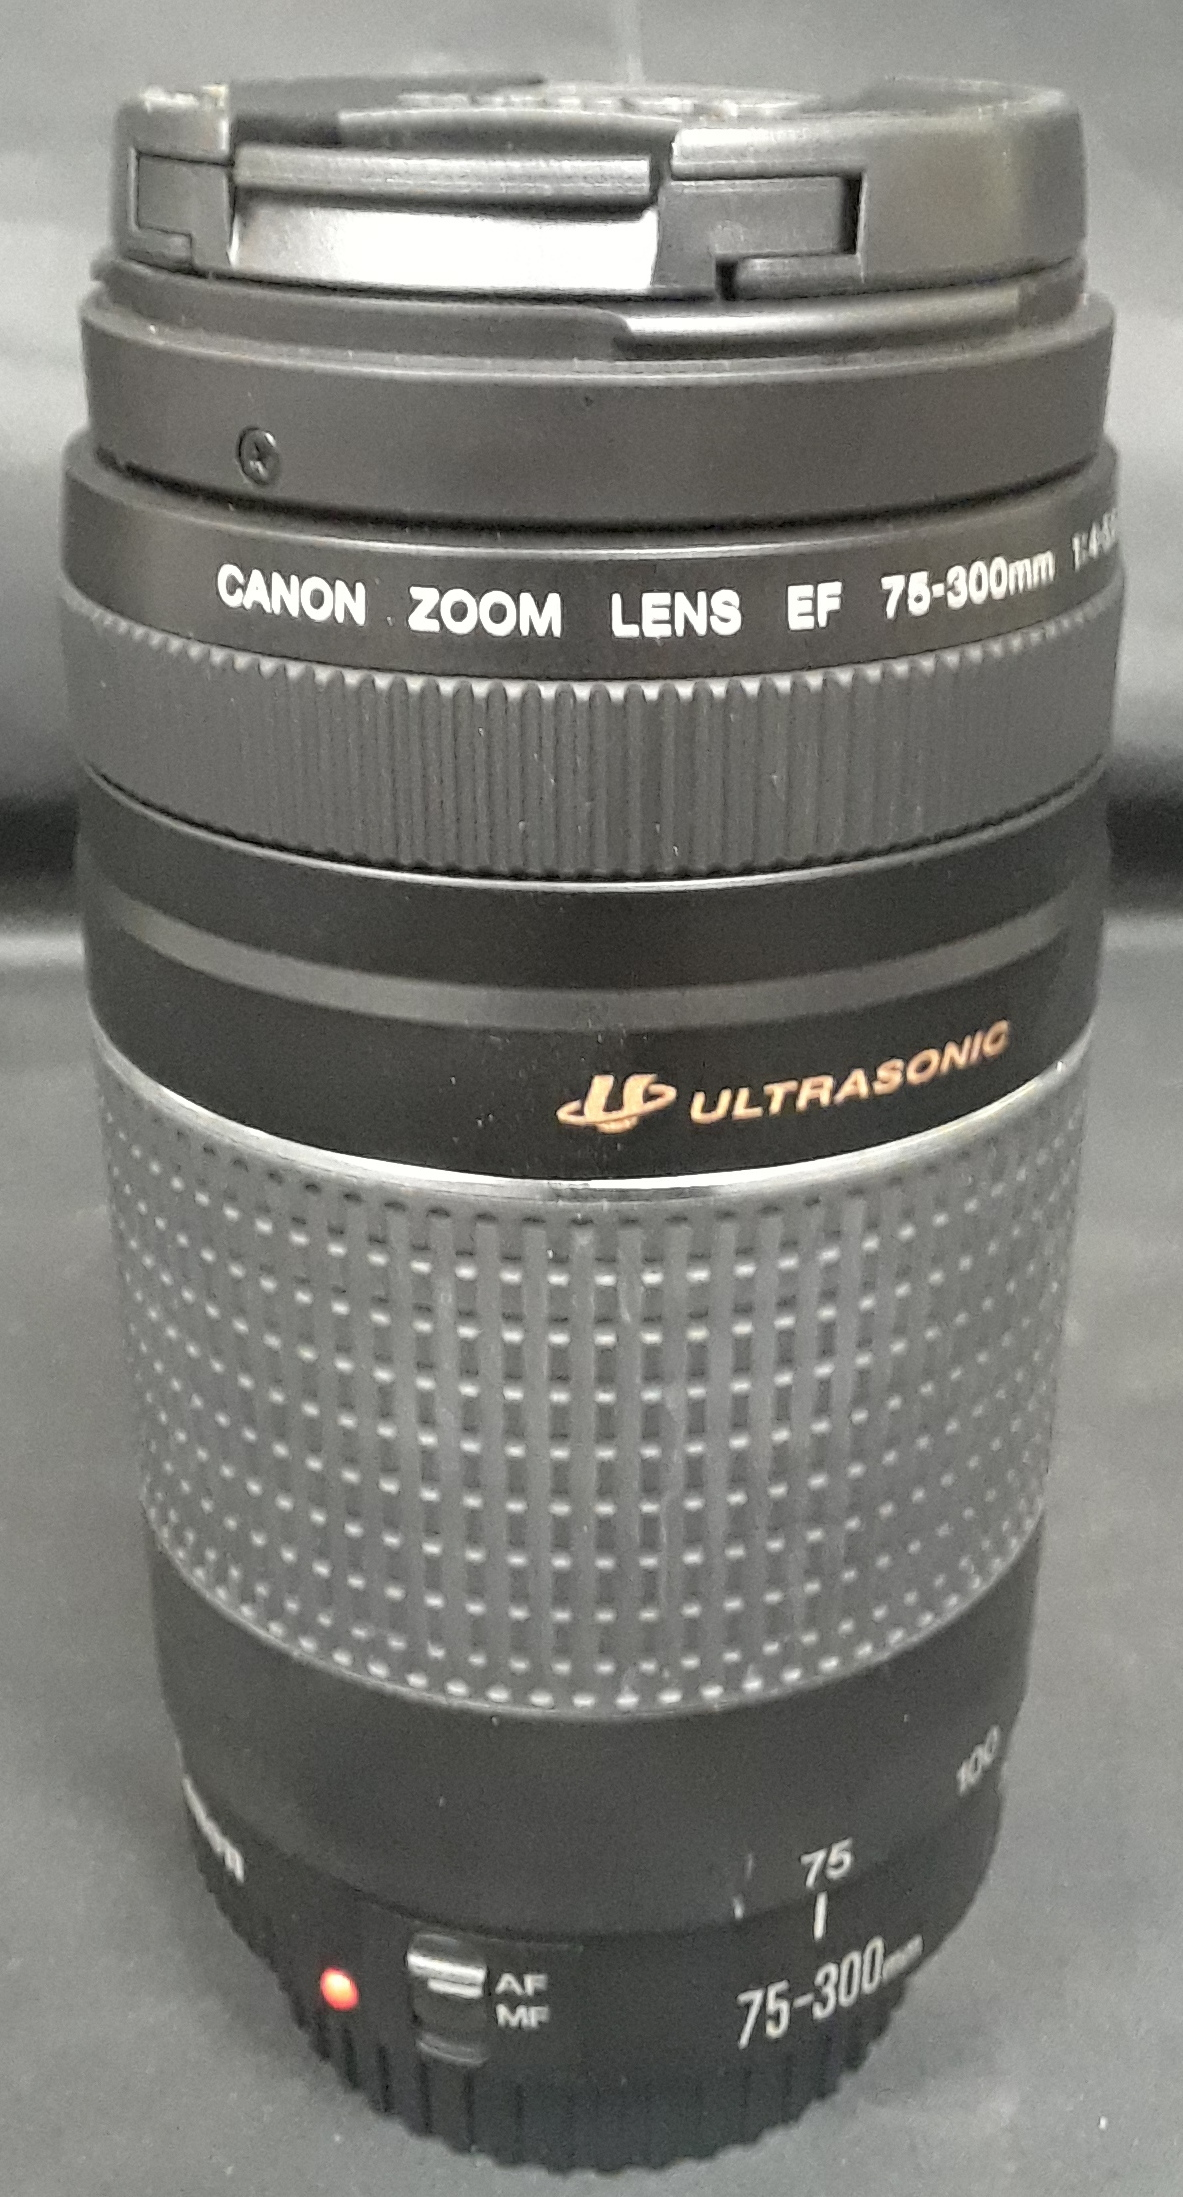 CANON 75-300MM ZOOM CAMERA LENS - MODEL: LENS EF